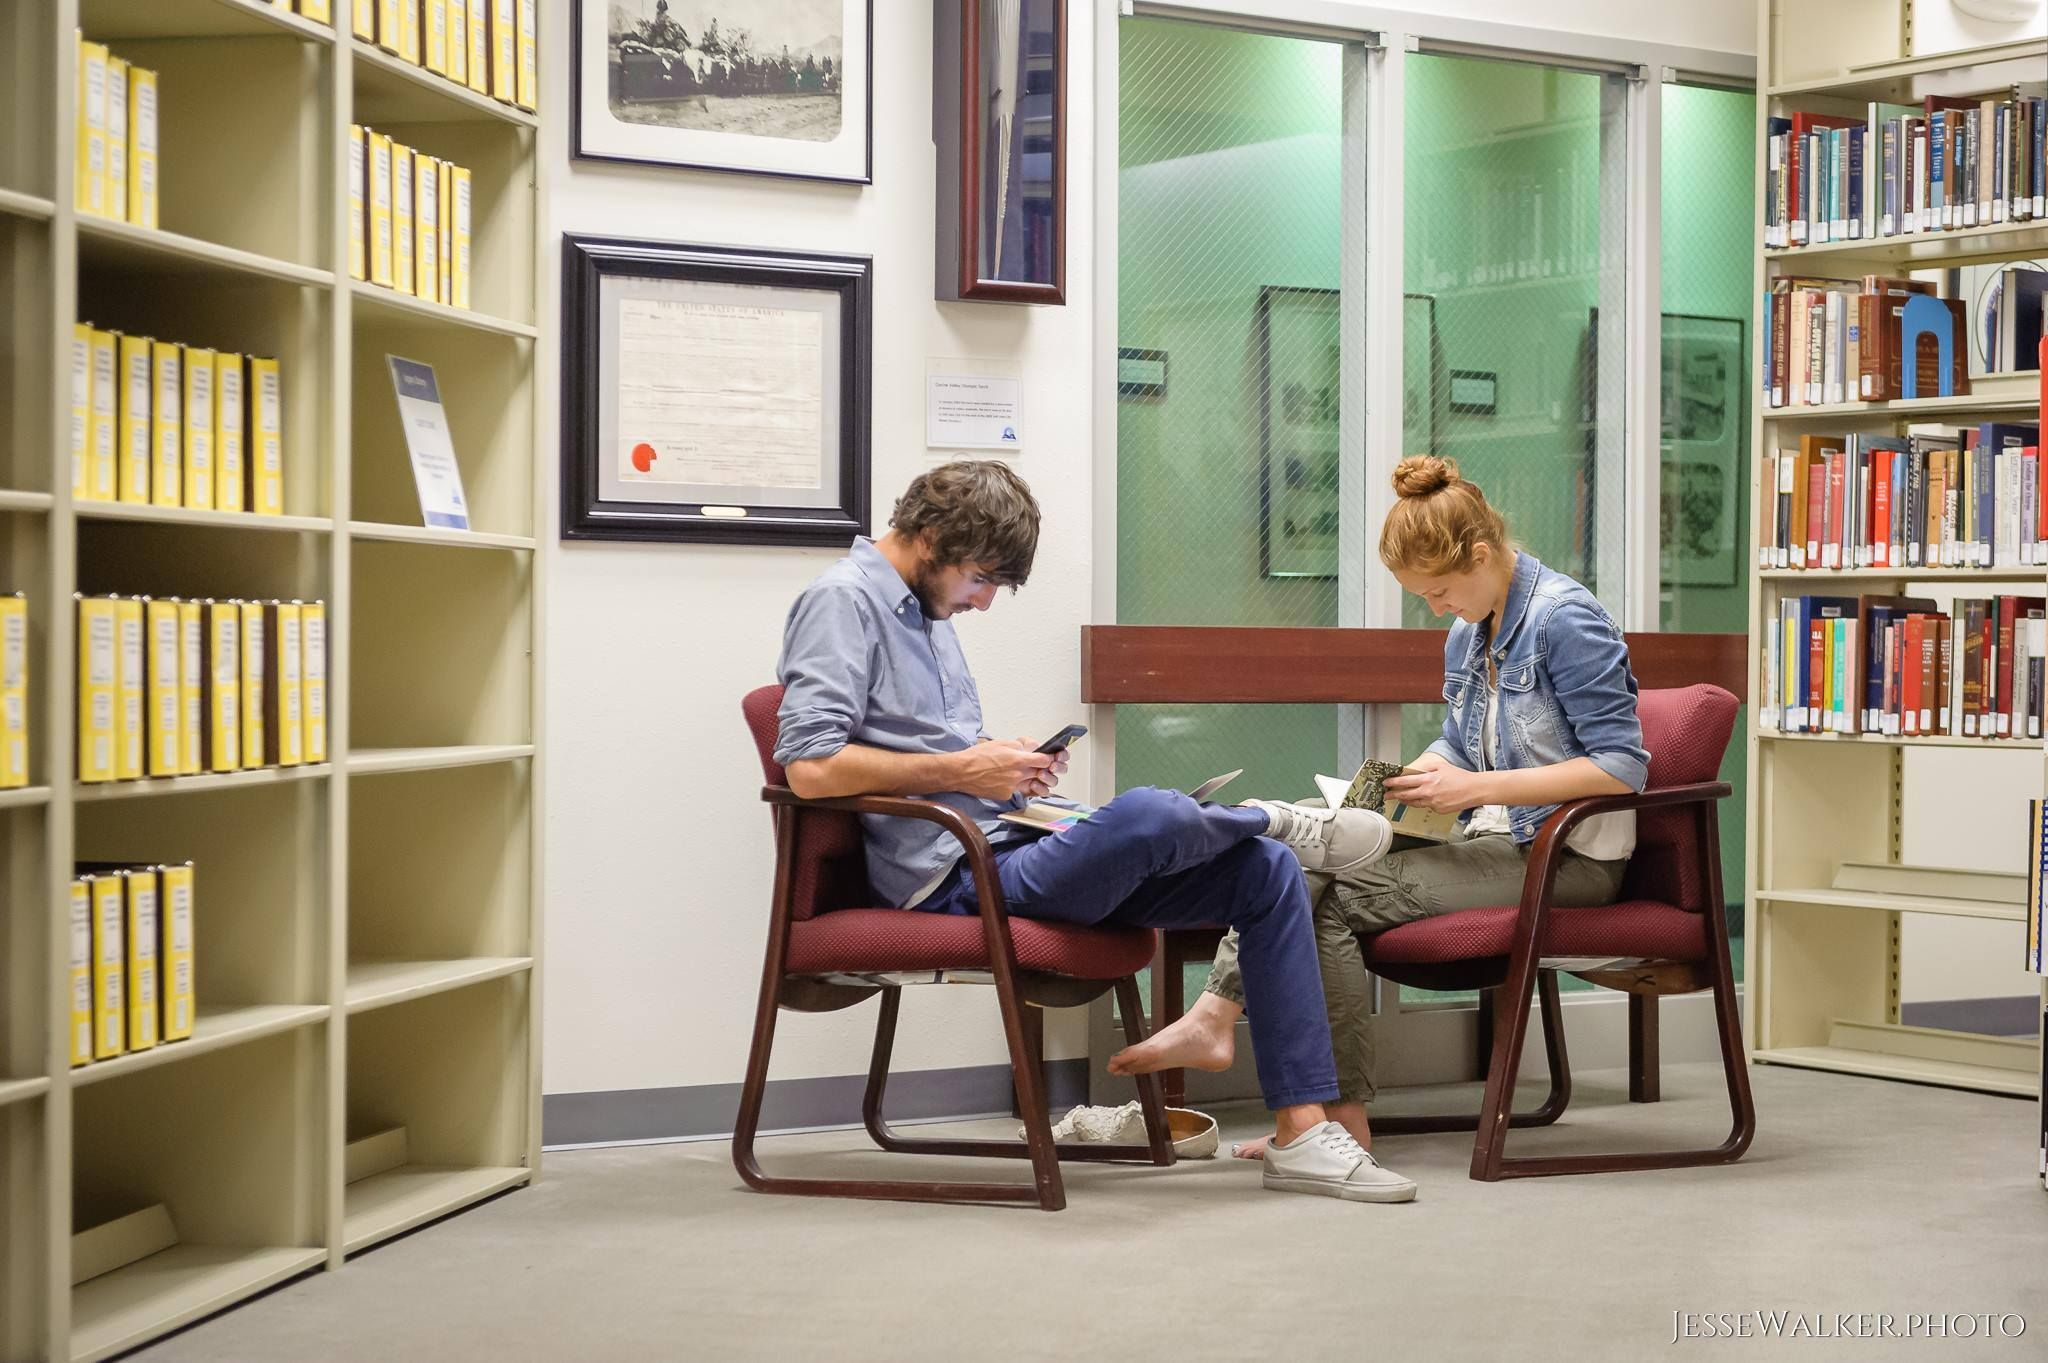 Library patrons have a quiet moment in the Virginia Hansen Special Collections room during our centennial day.